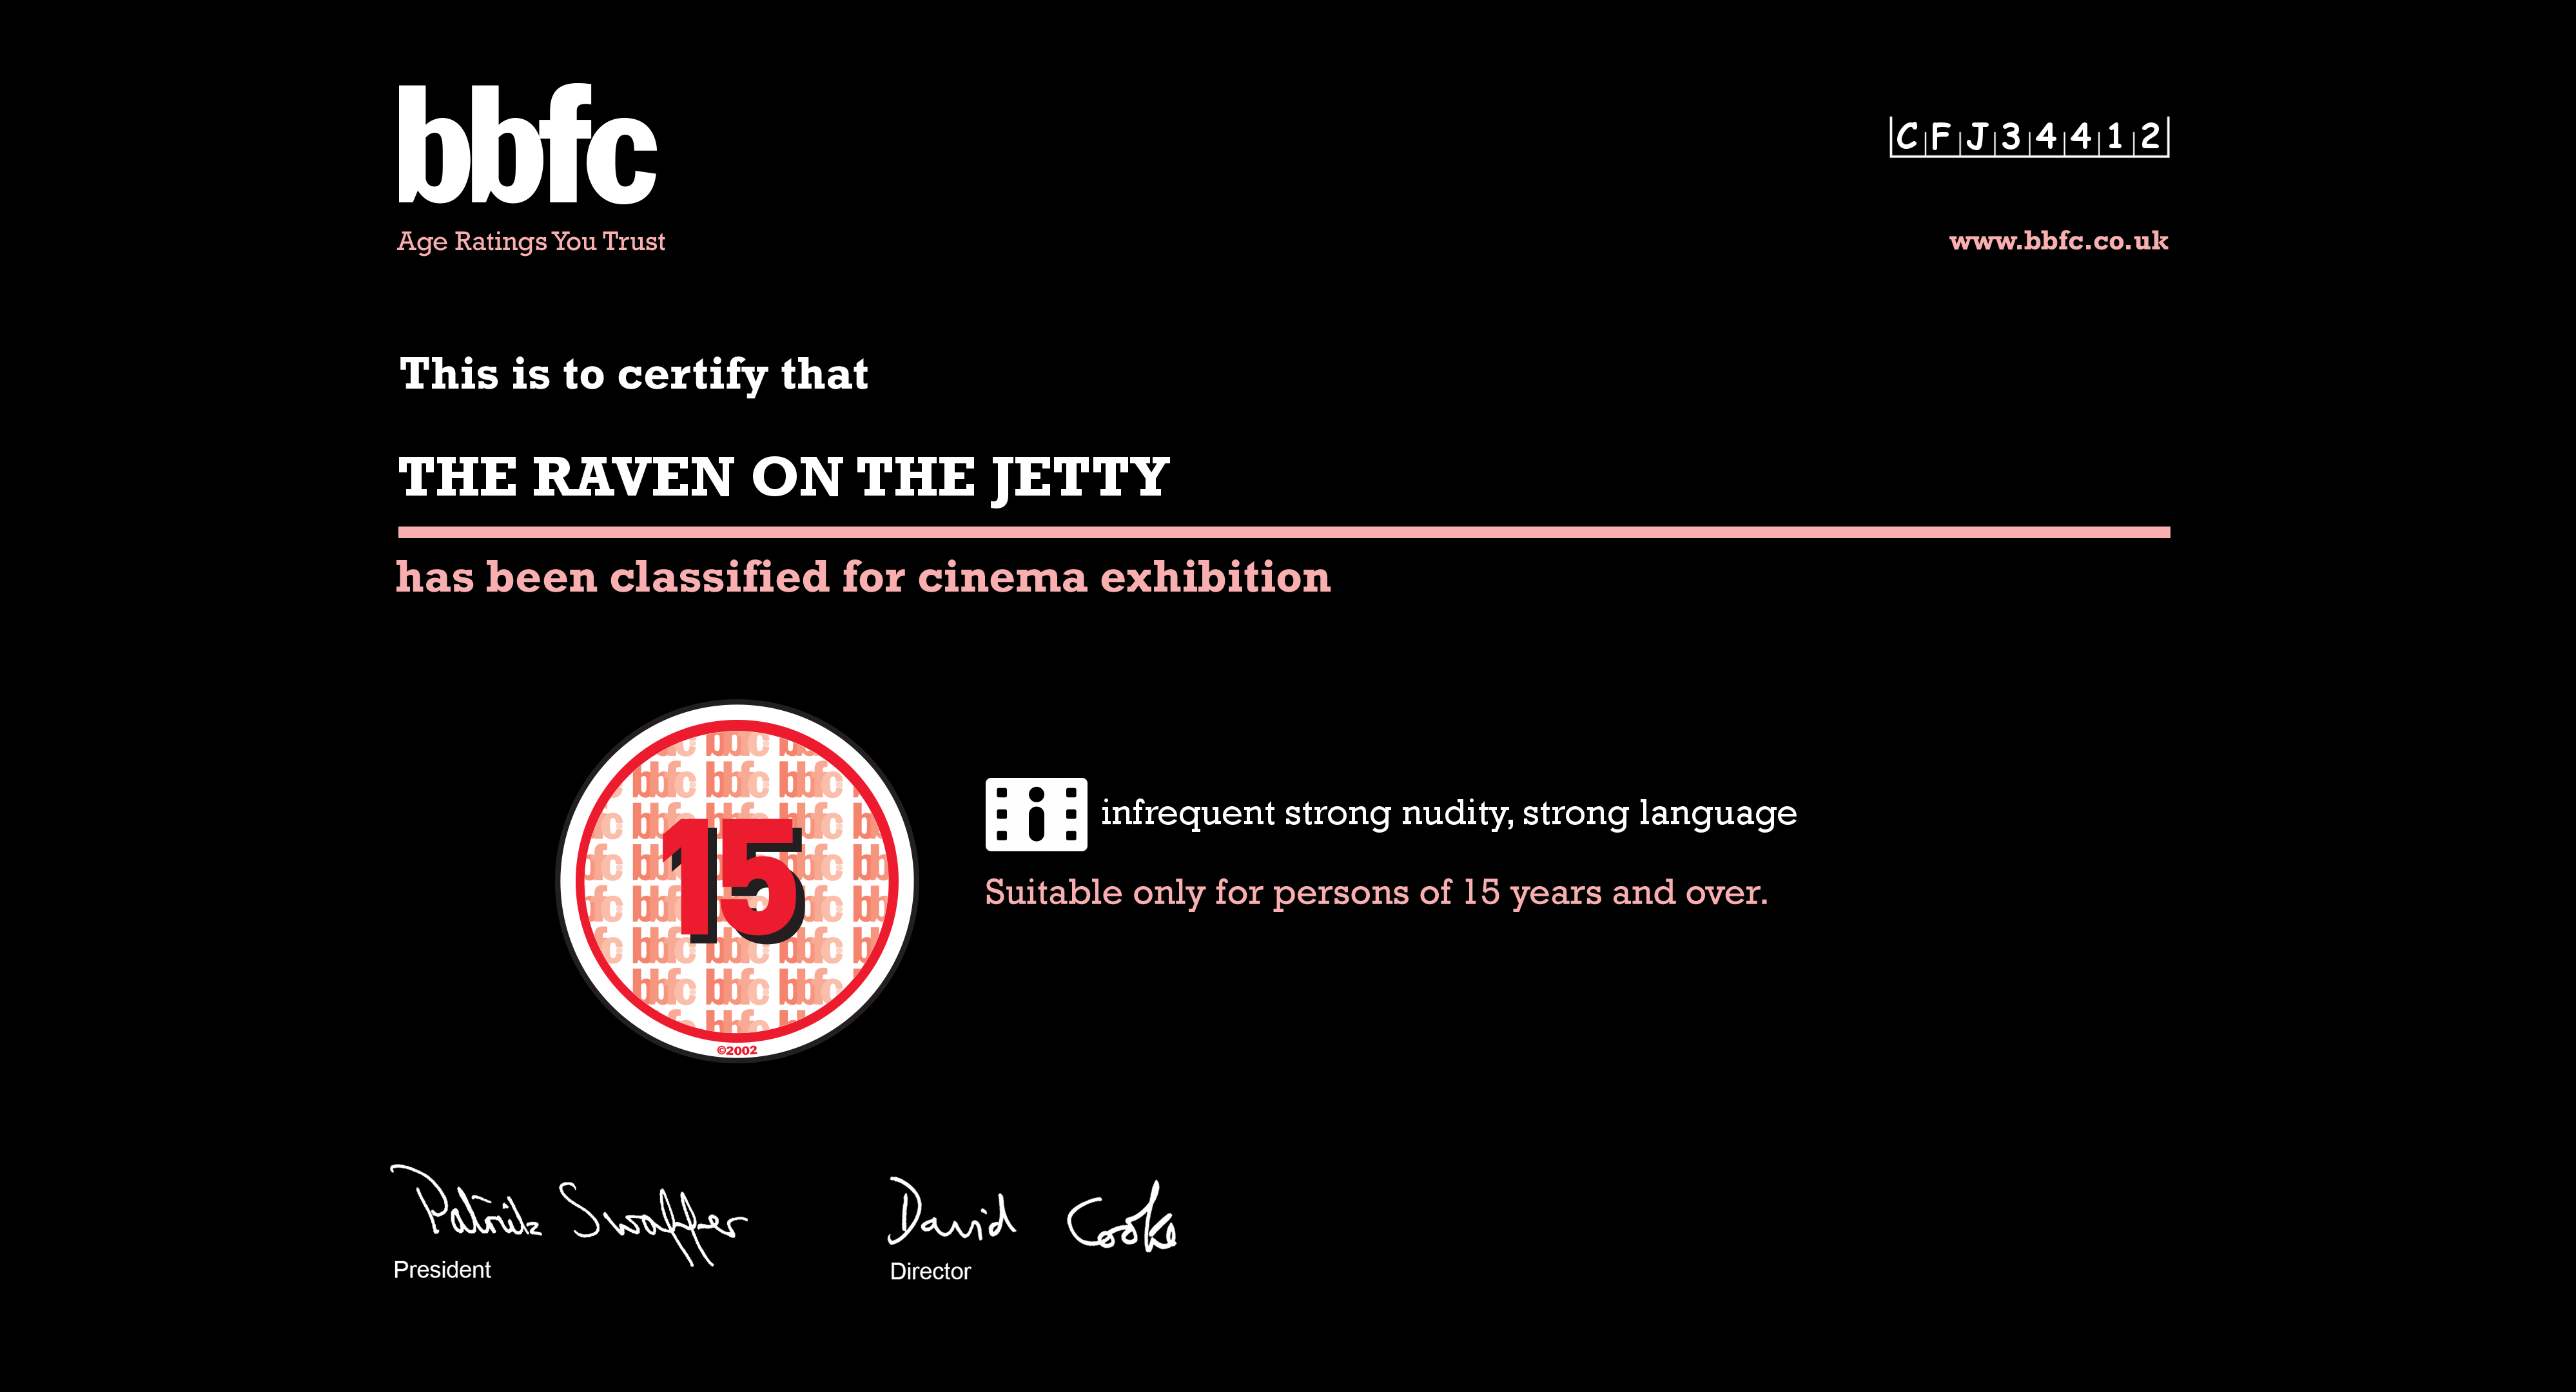 Bbfc Rating Of The Raven On Jetty